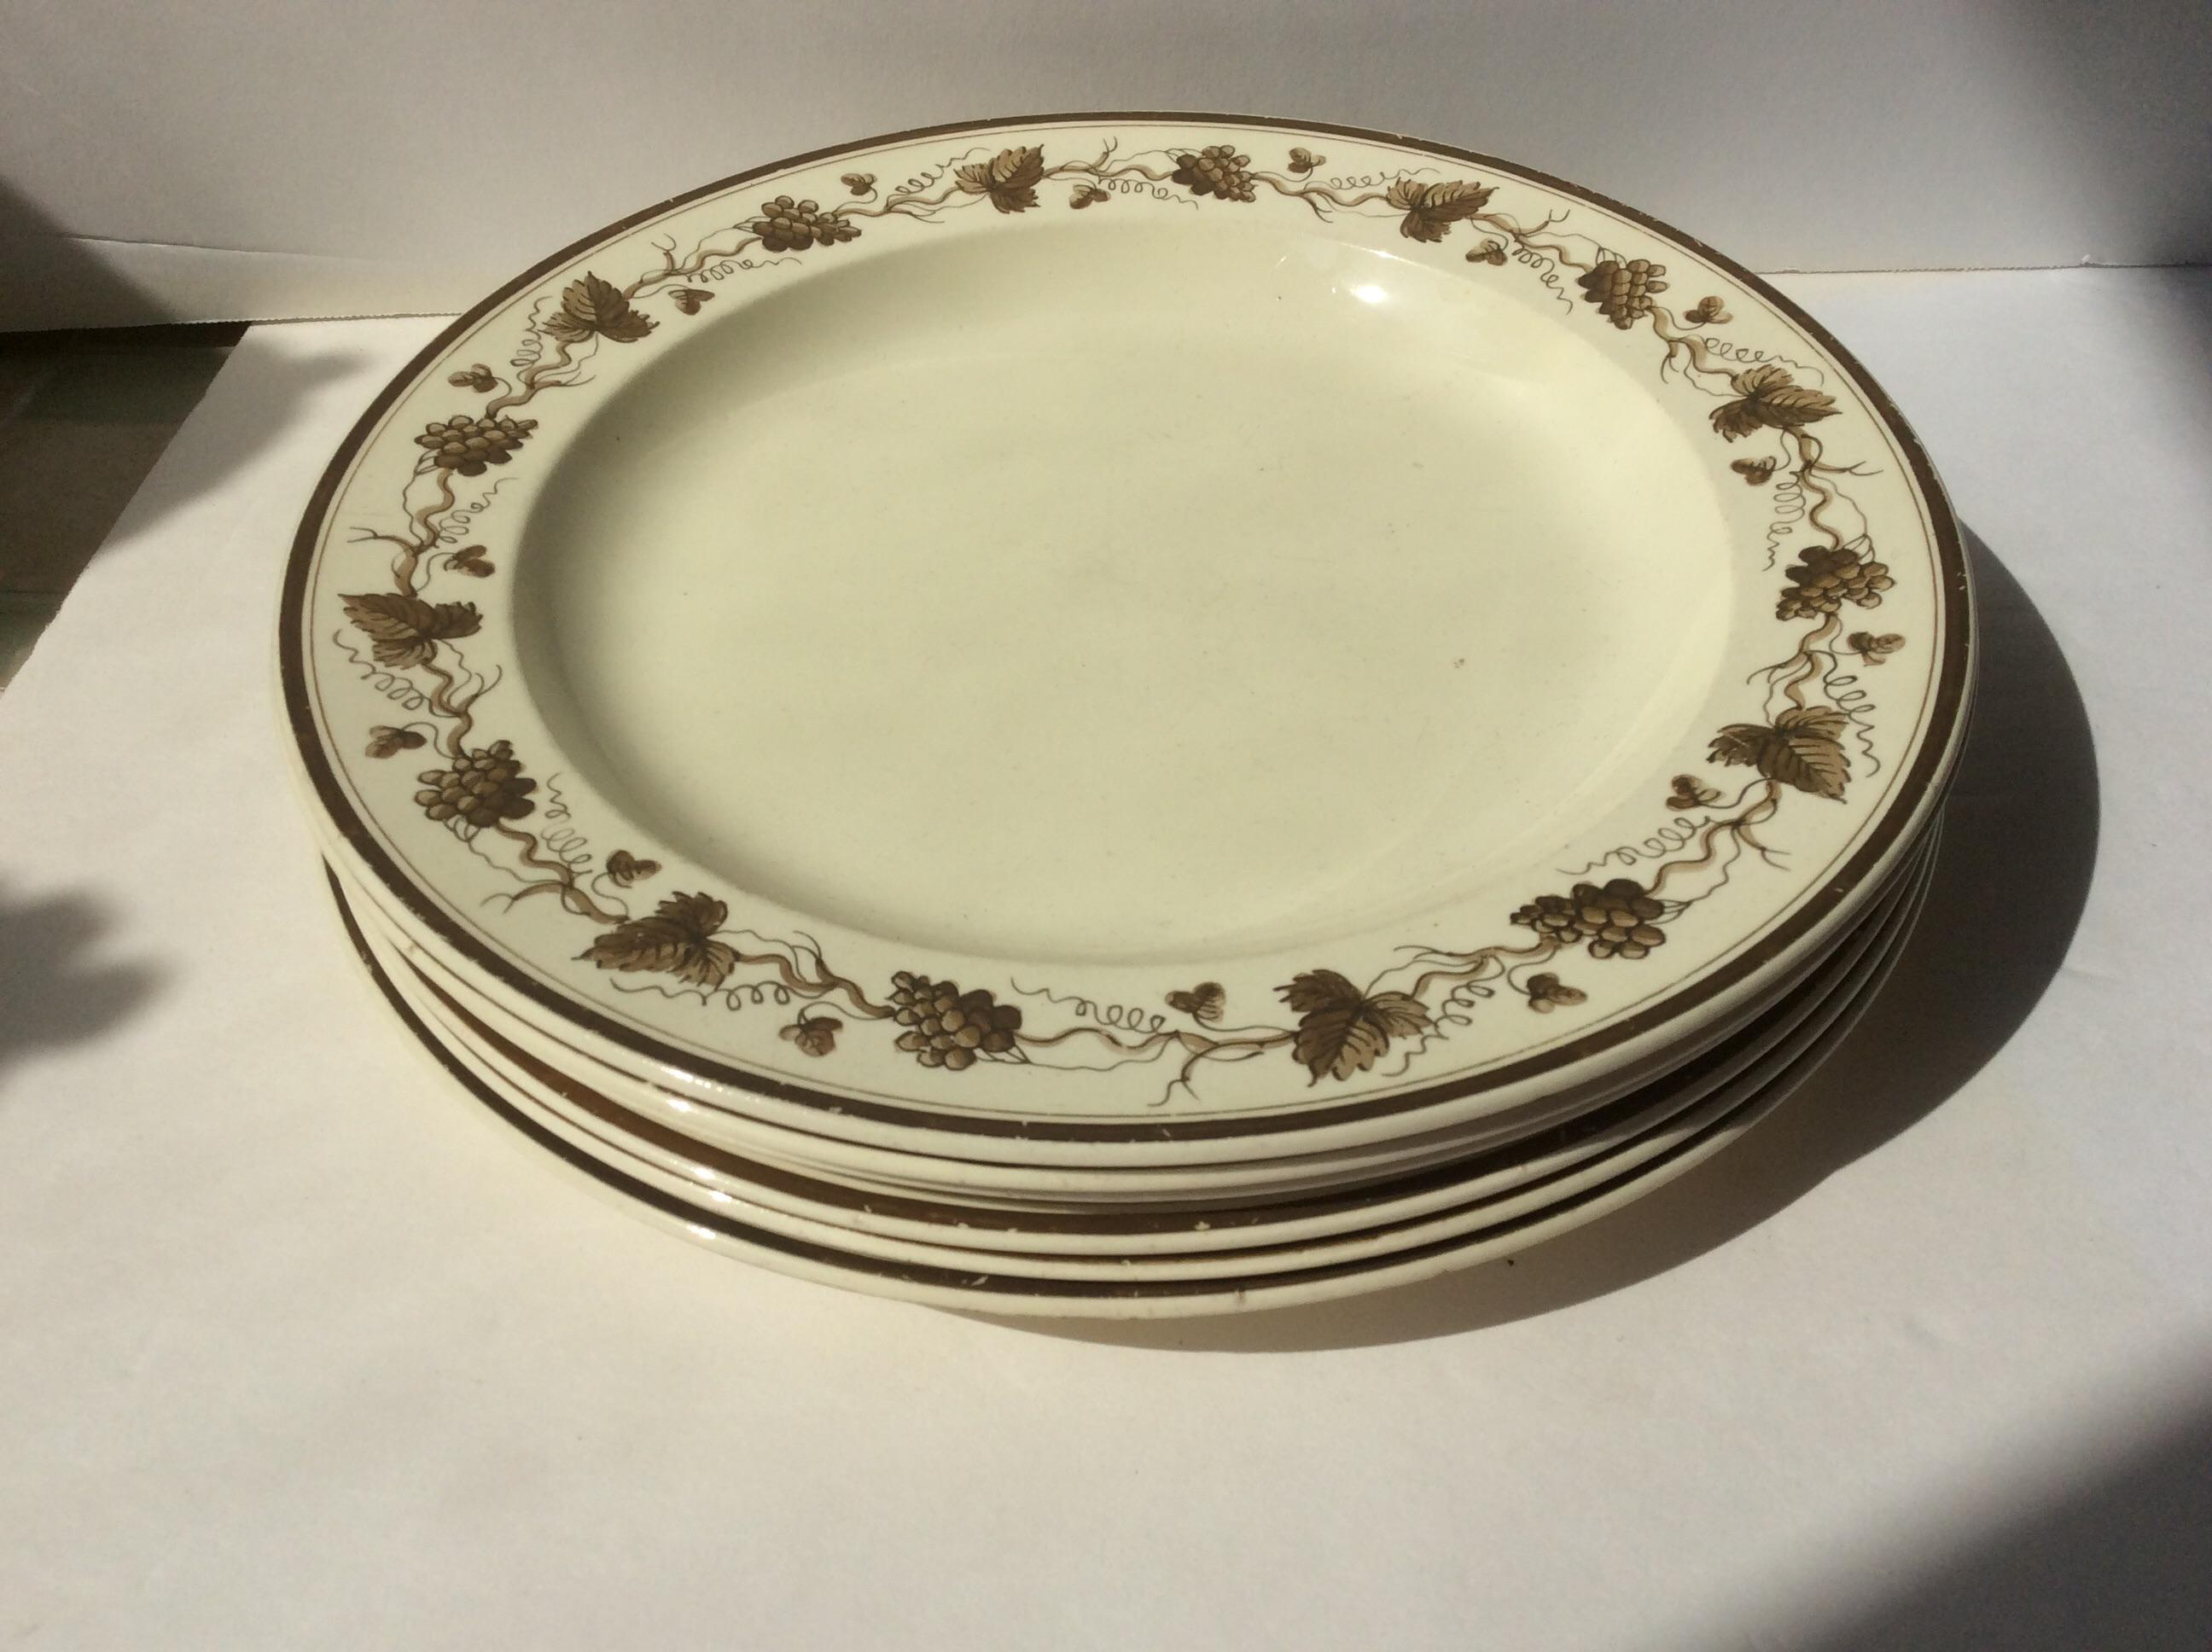 Creamware Plates With Grape Leaf Design - Set of 6 - Image 6 of 6  sc 1 st  Chairish & Creamware Plates With Grape Leaf Design - Set of 6 | Chairish